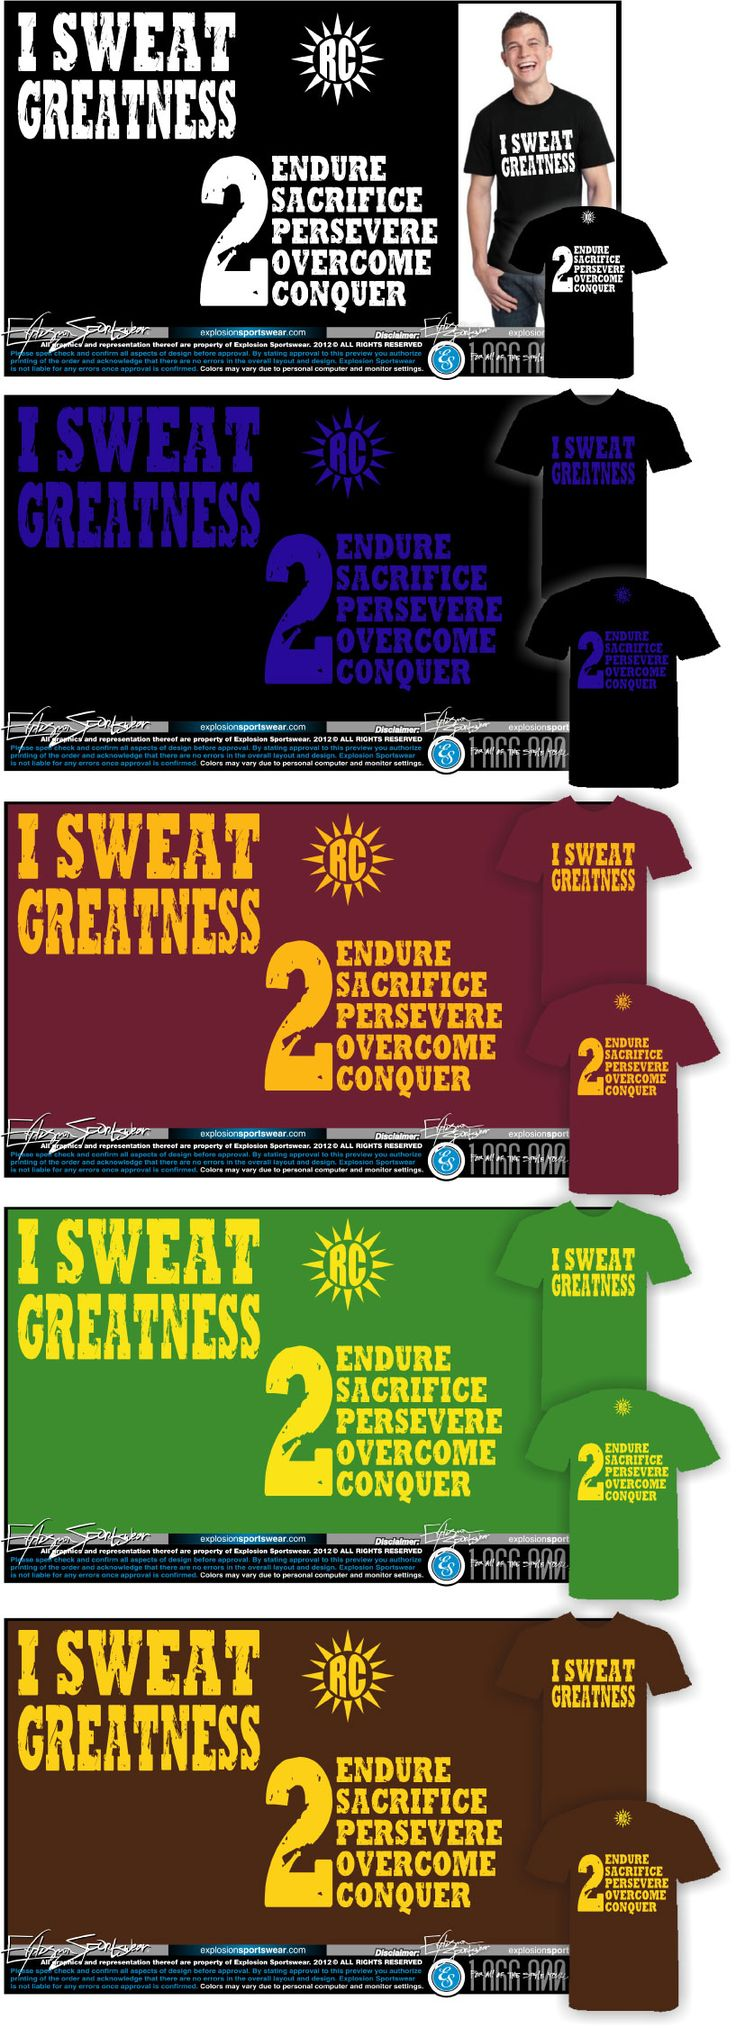 I have two slogans: I SWEAT GREATNESS and SWEATING GREATNESS. These shirts are available in any color.